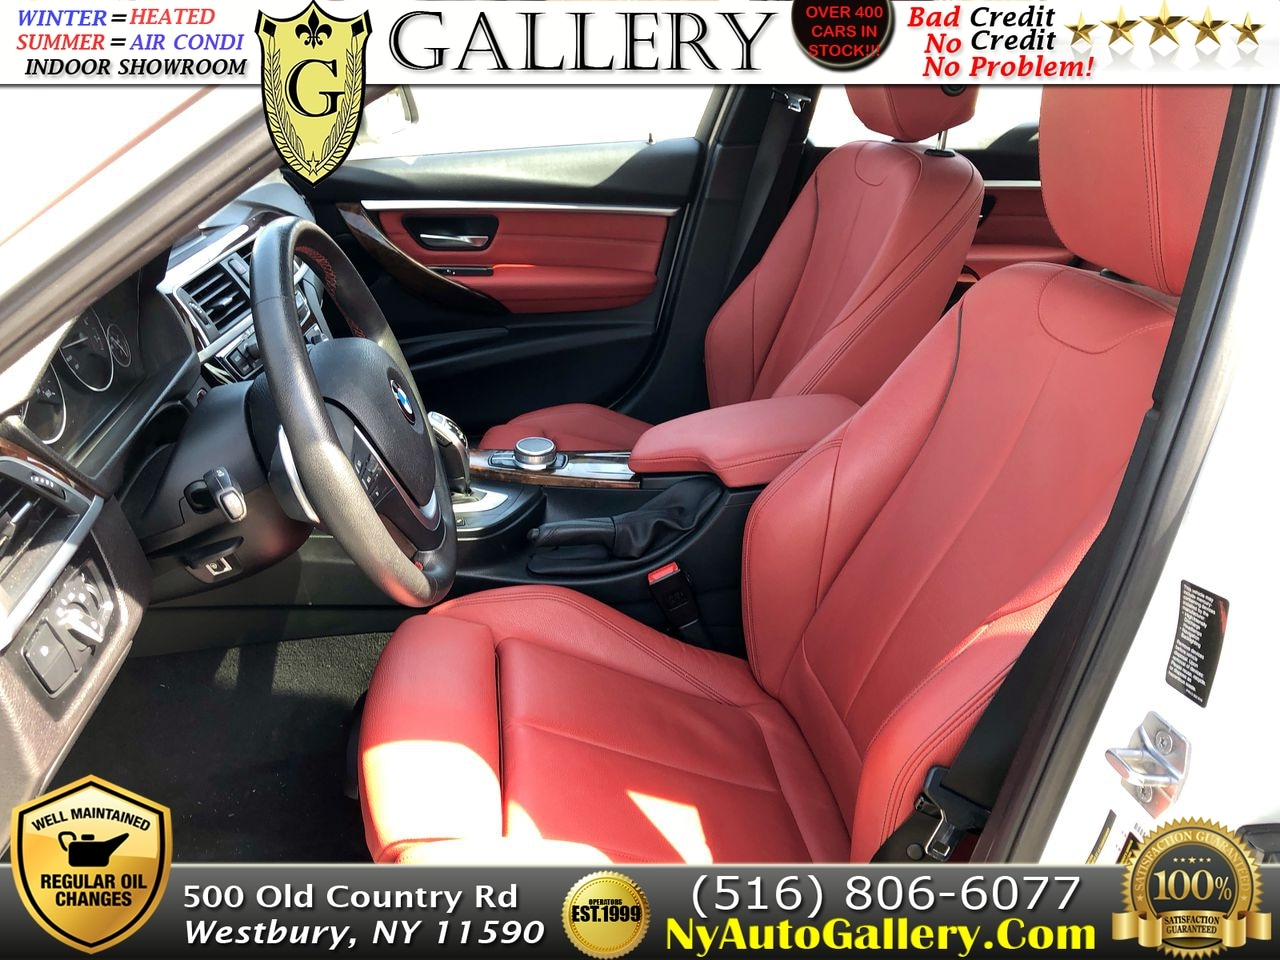 Used 2017 BMW 3-Series For Sale at Auto Gallery Imports